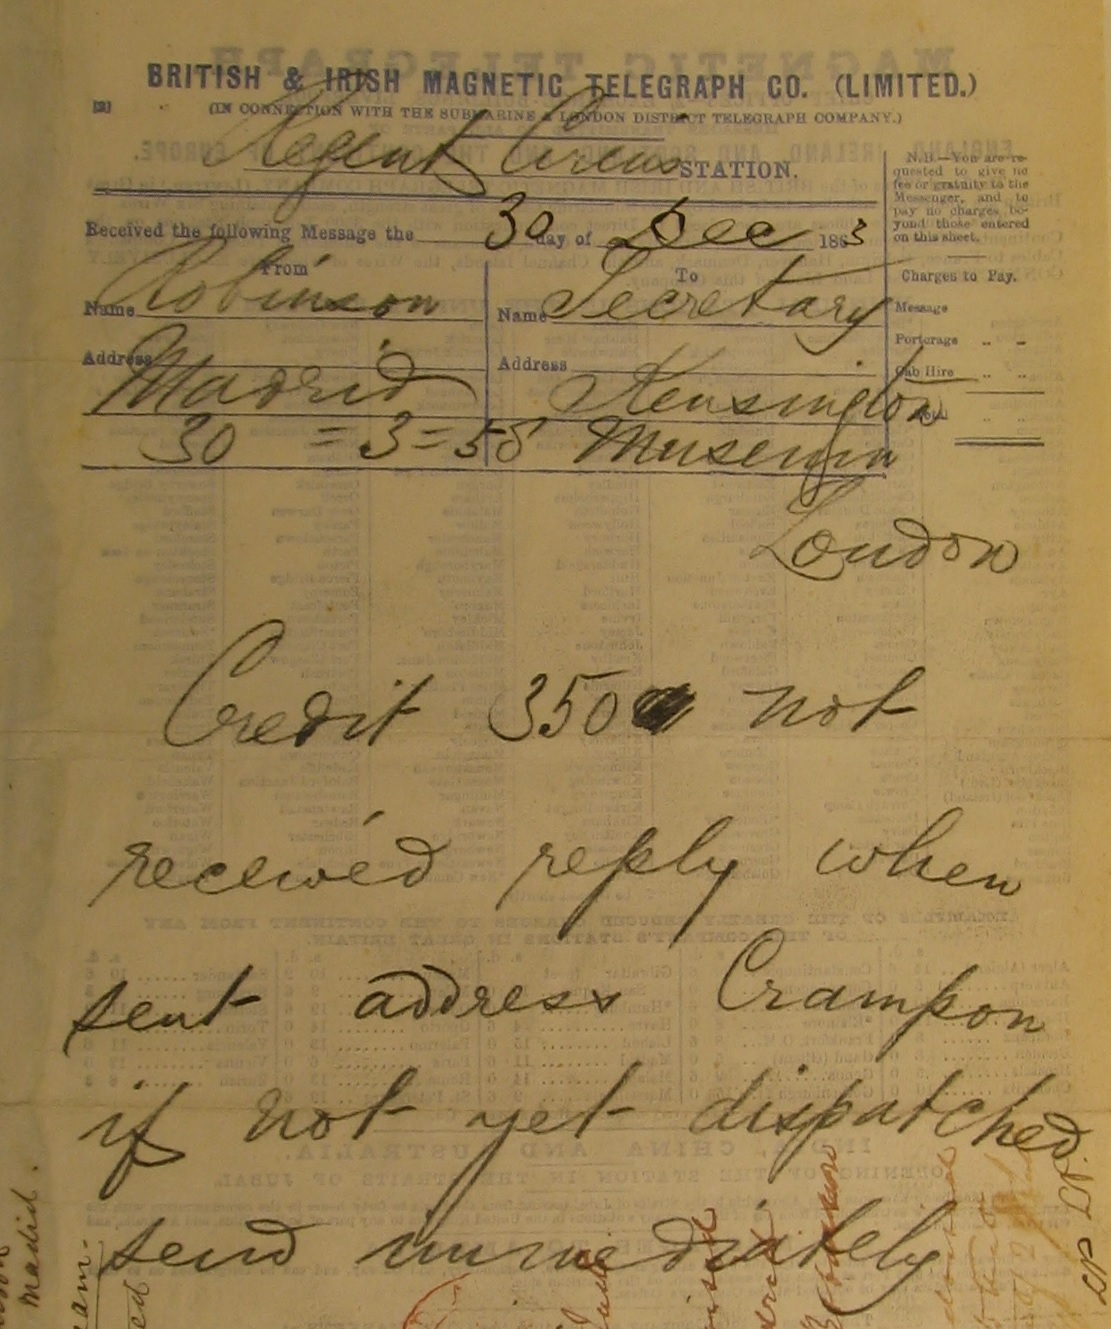 A telegram from John Charles Robinson requesting £350 be sent to Madrid (V&A Archive ref: MA/3/4; RP/1864/18) © Victoria & Albert Museum, London